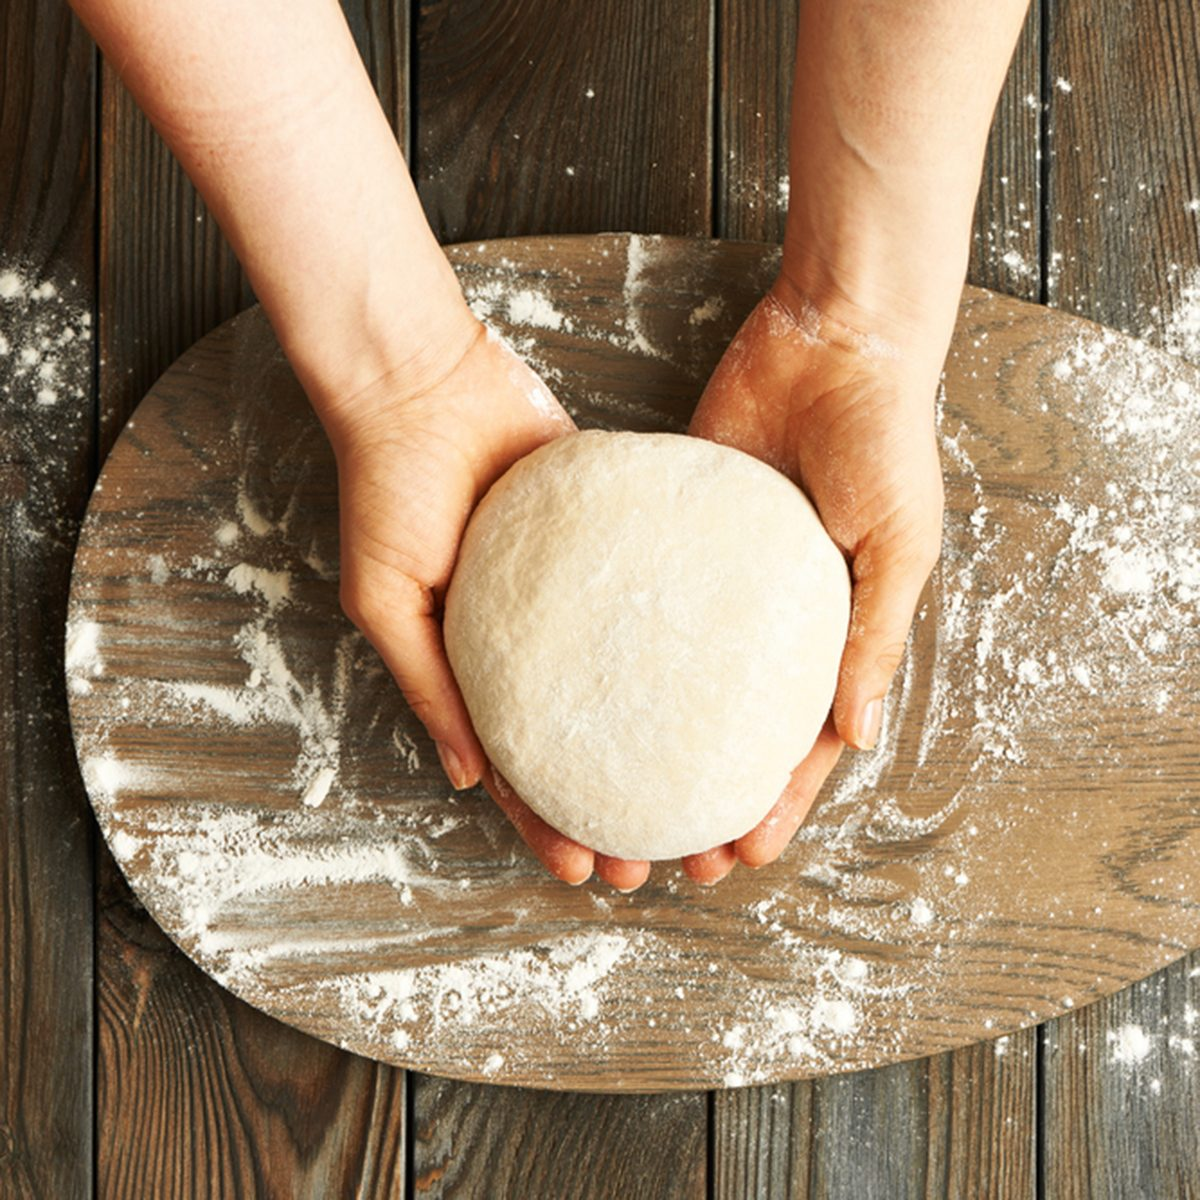 Female hands kneading dough on wooden table; Shutterstock ID 400443688; Job (TFH, TOH, RD, BNB, CWM, CM): TOH